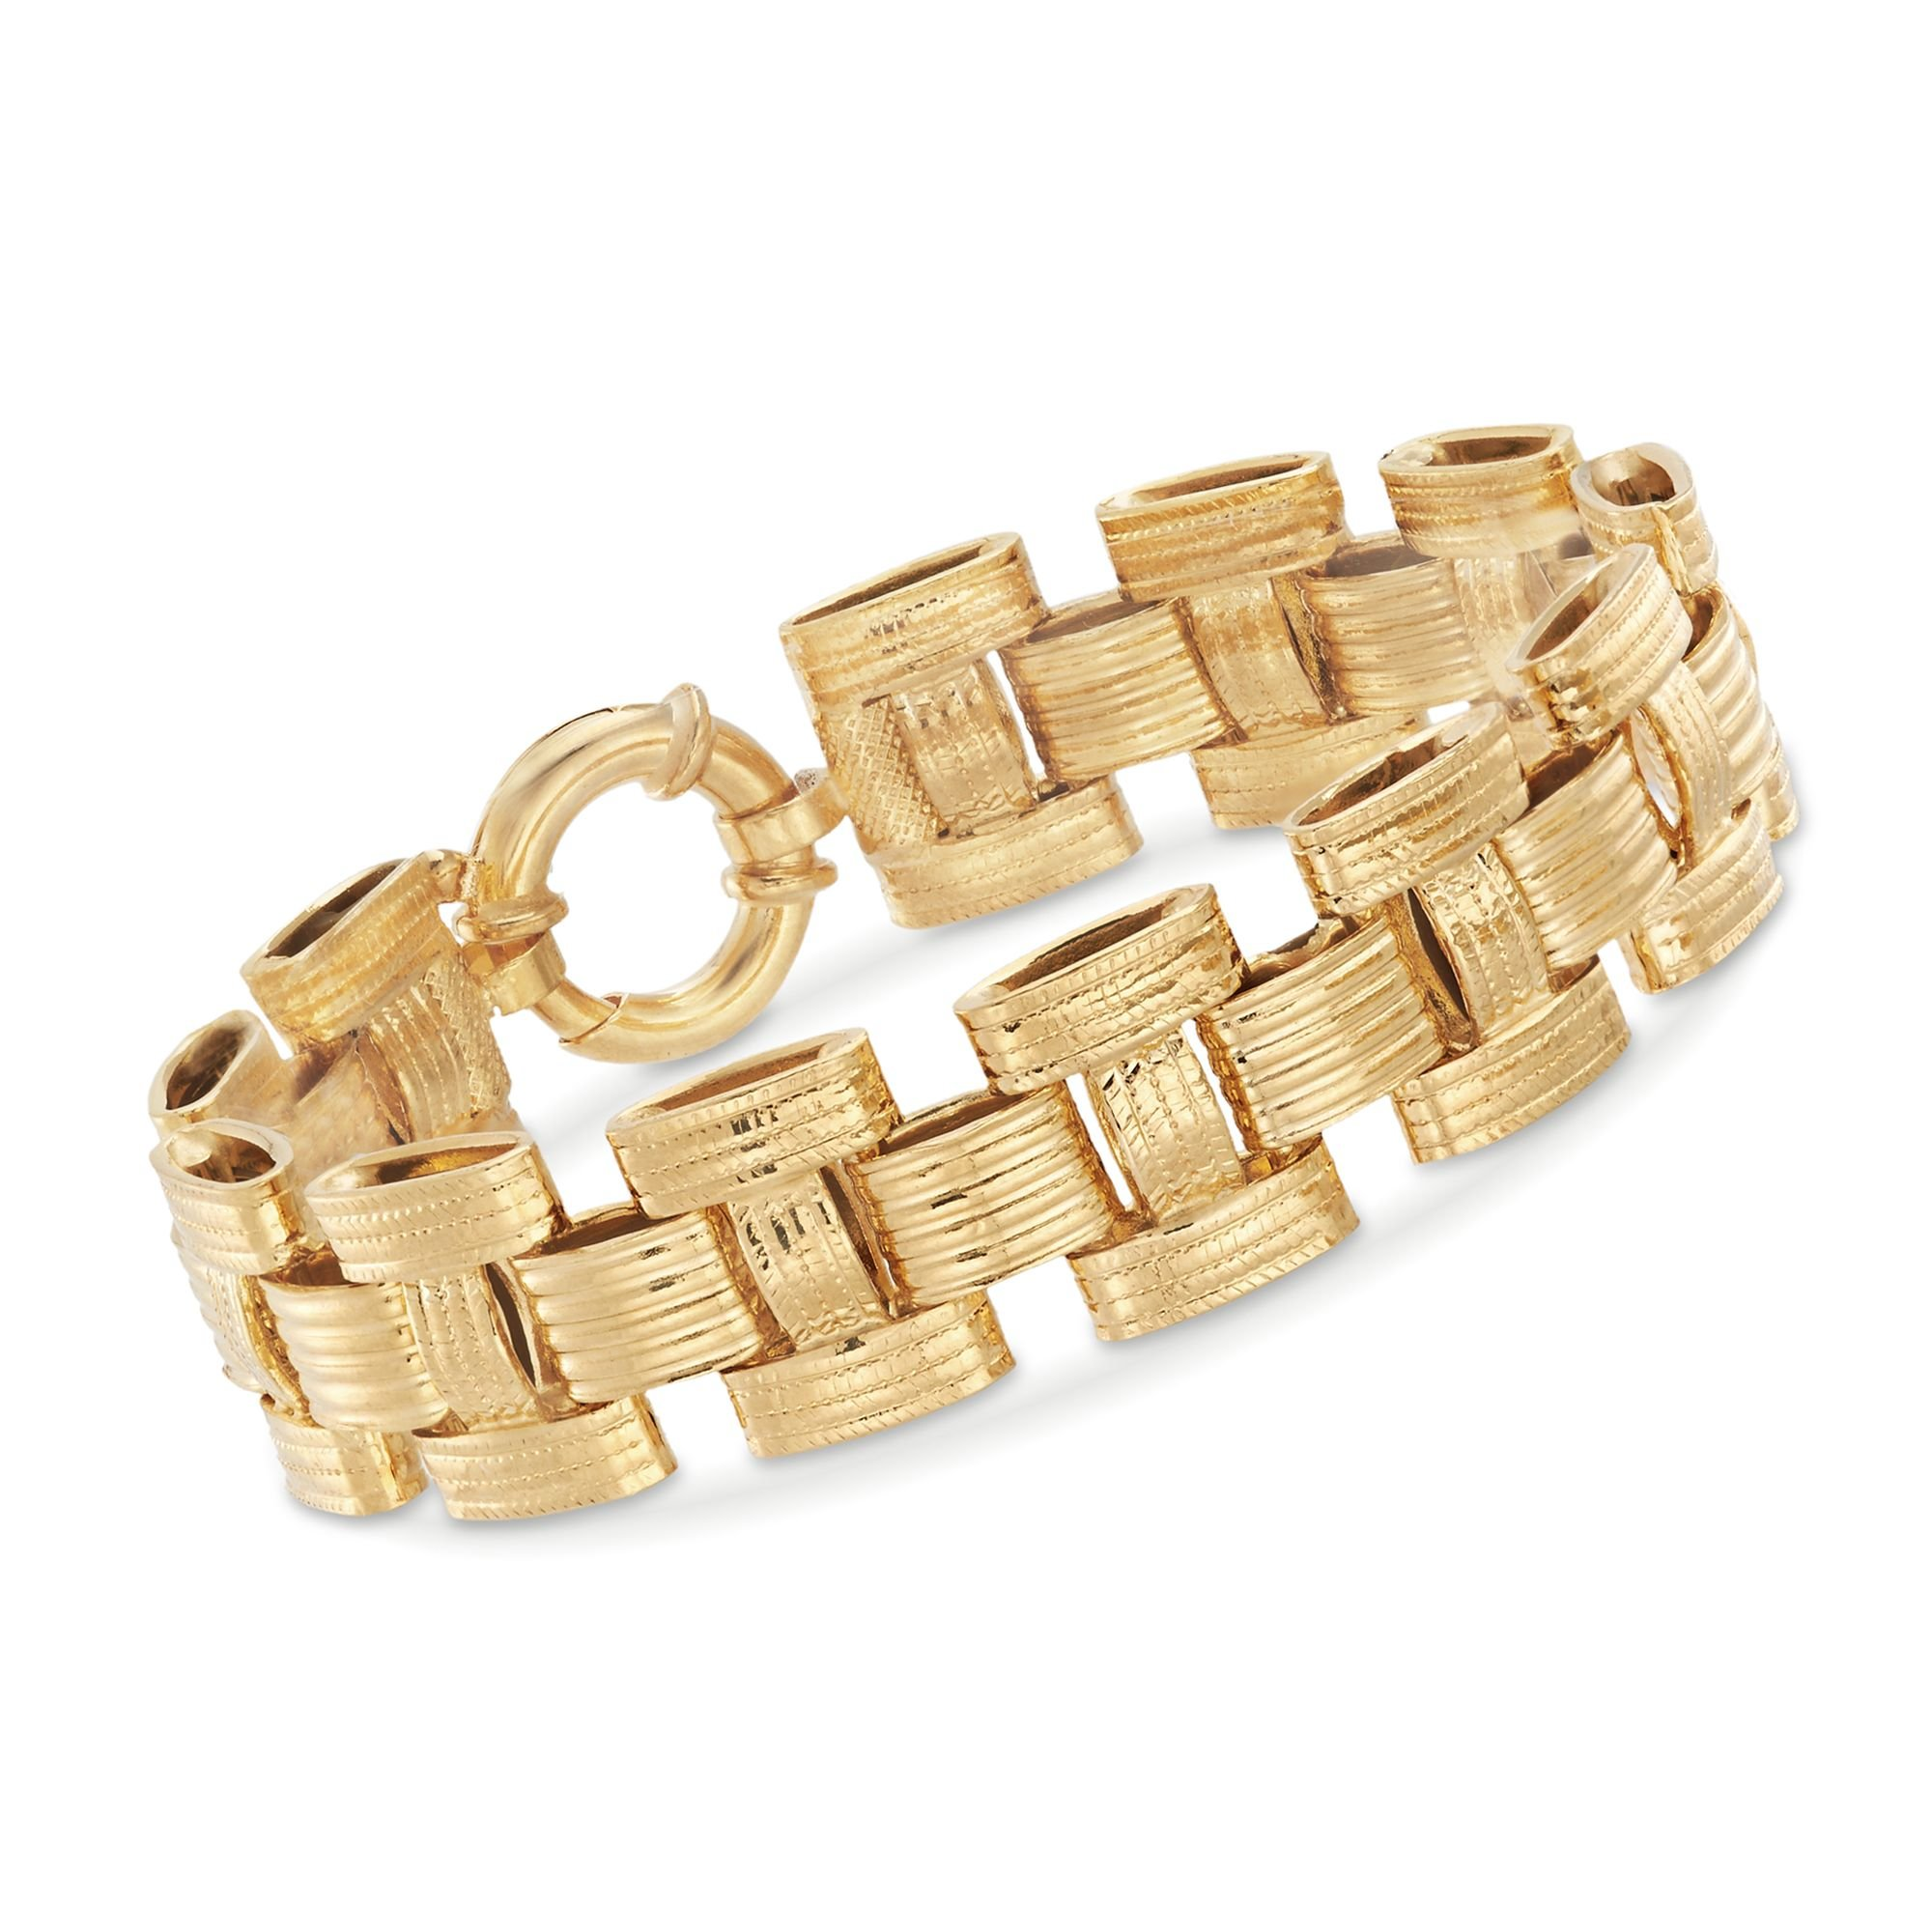 Ross-Simons Italian 18kt Yellow Gold Textured and Polished Panther-Link Bracelet